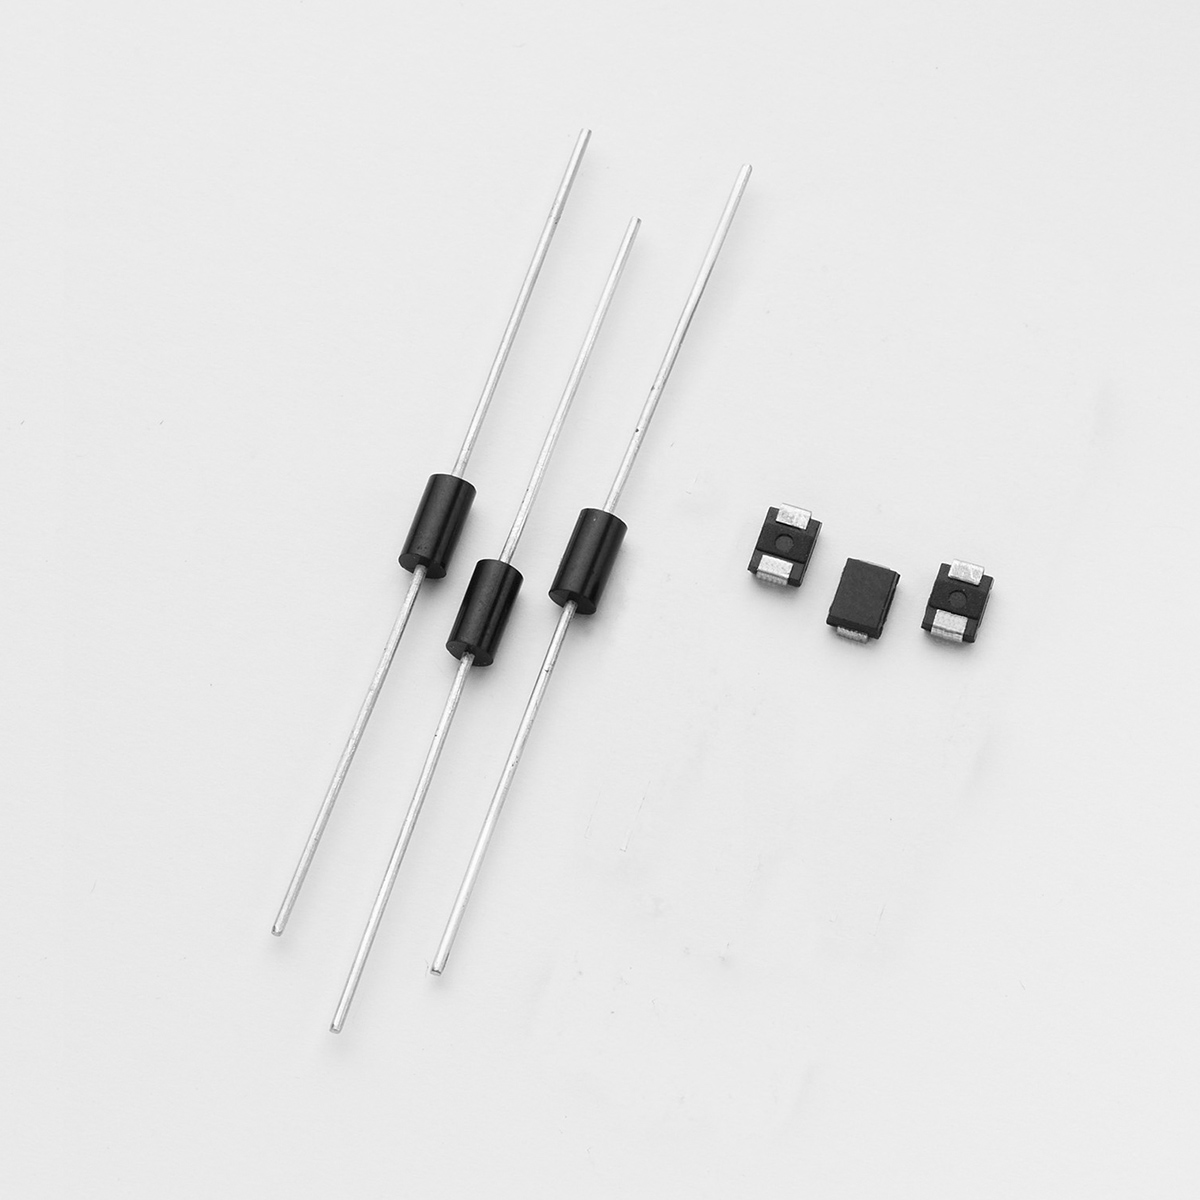 Sidac Thyristors Littelfuse Diode Protection Circuits Tutorial Diodes Hobby K2xx0yhu Series